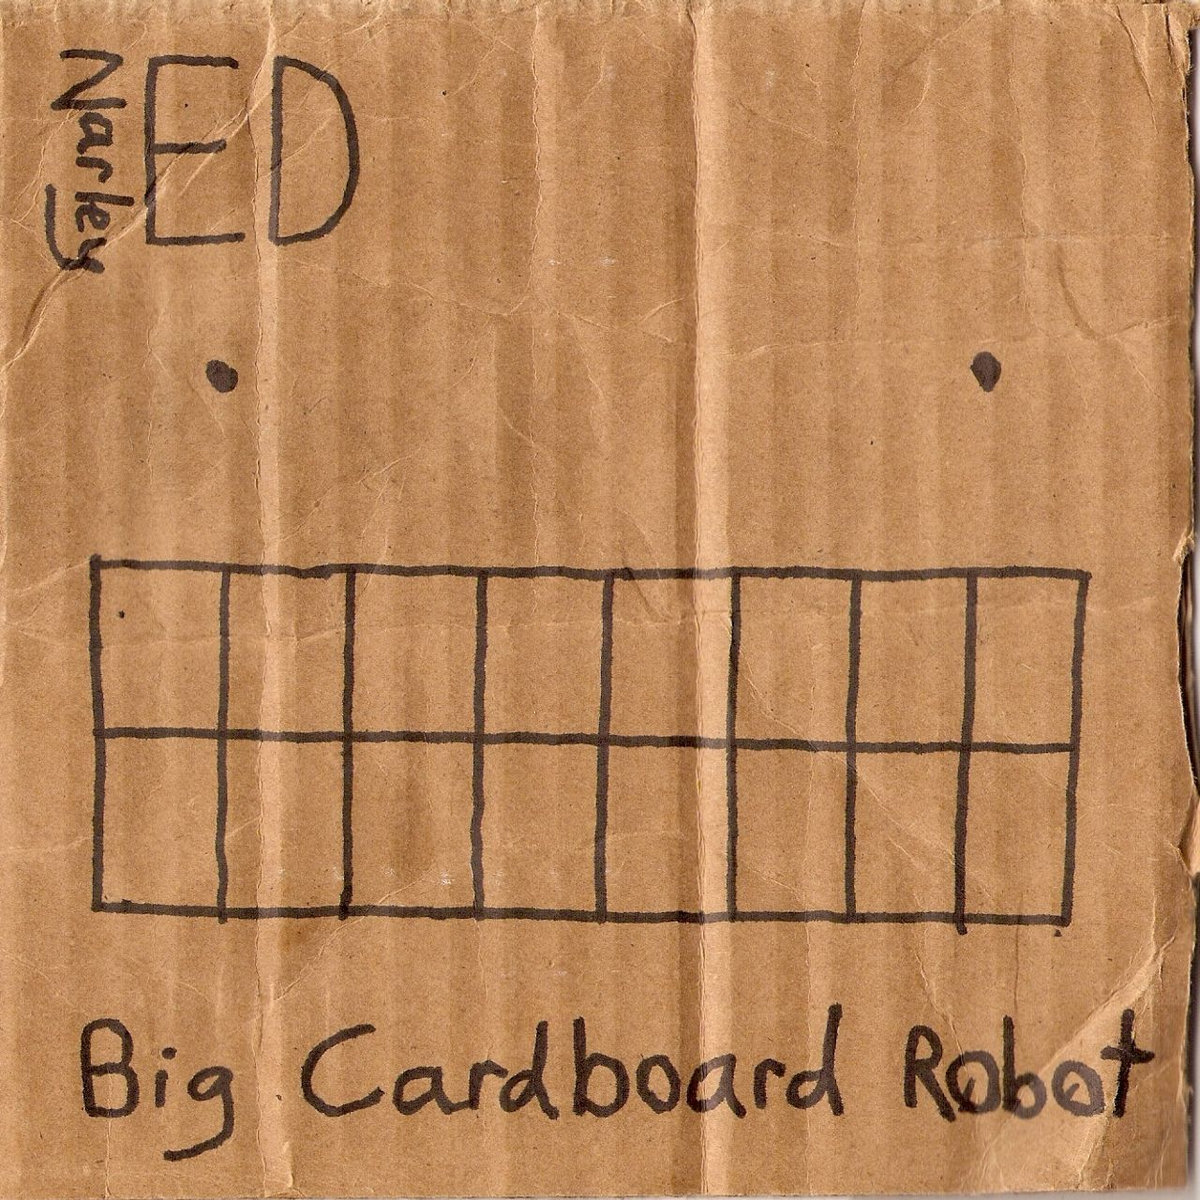 Cardboard Robots Band Big Cardboard Robot Cover Art